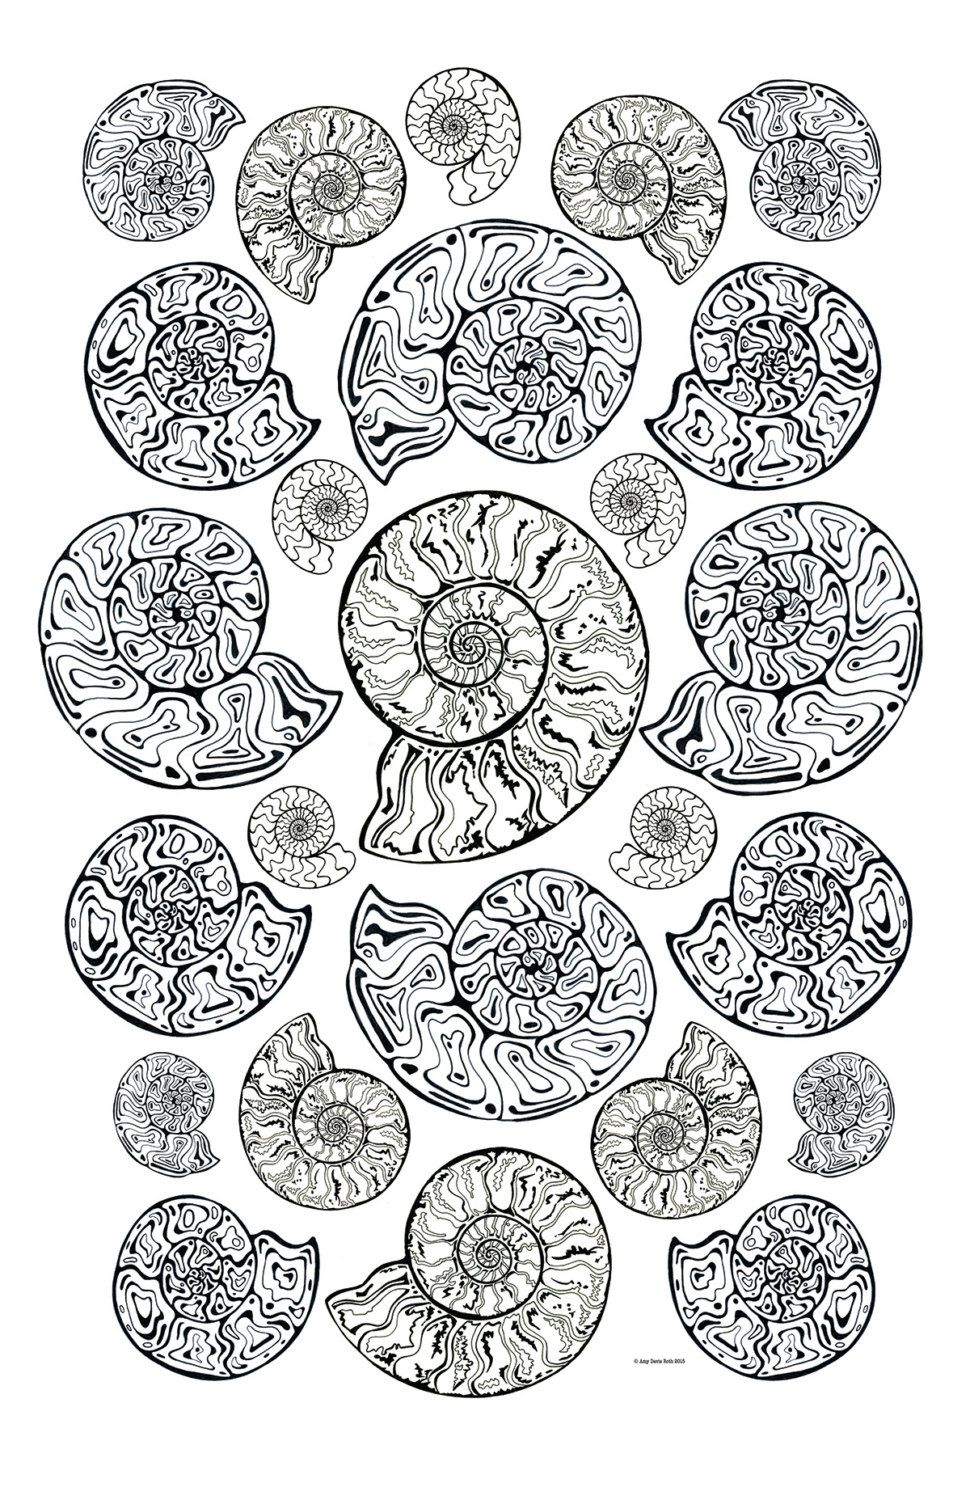 All Ages Coloring Art Print Ammonites Fossil Design 11x17 Poster For You To Color With FREE Markers